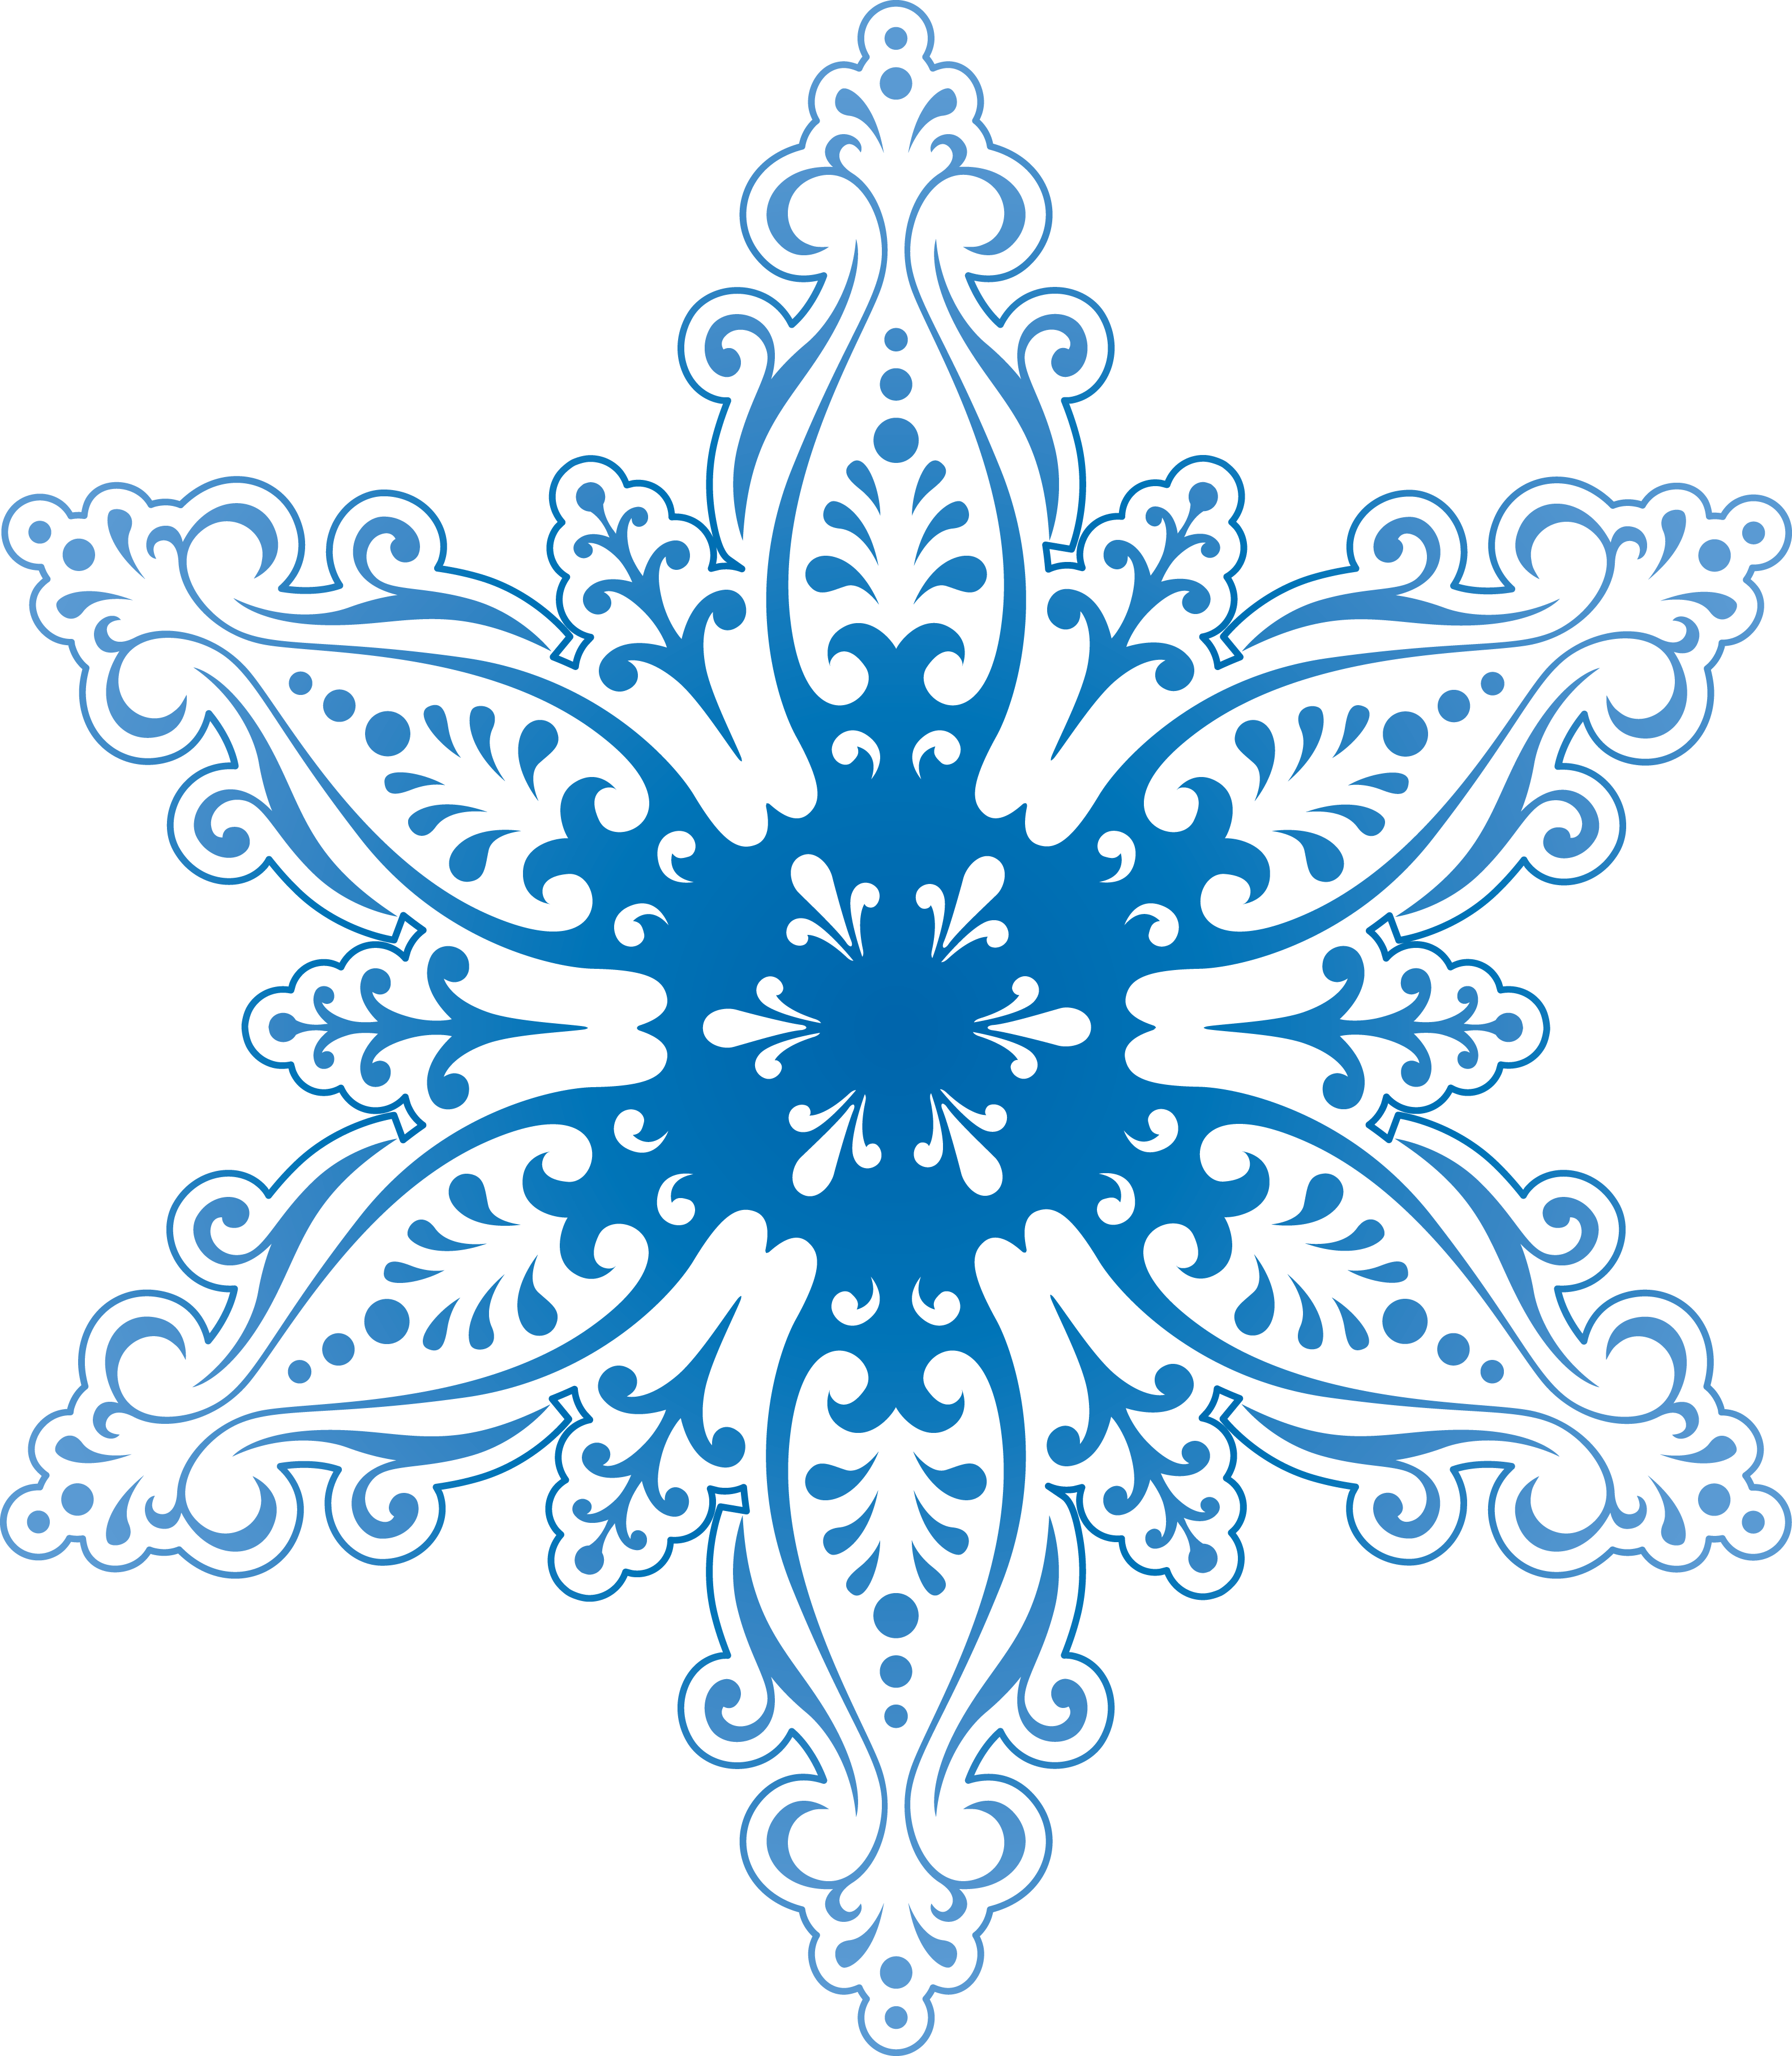 Blue snowflake outline clipart banner library Snowflake PNG image | pic for design | Pinterest | Scrap banner library